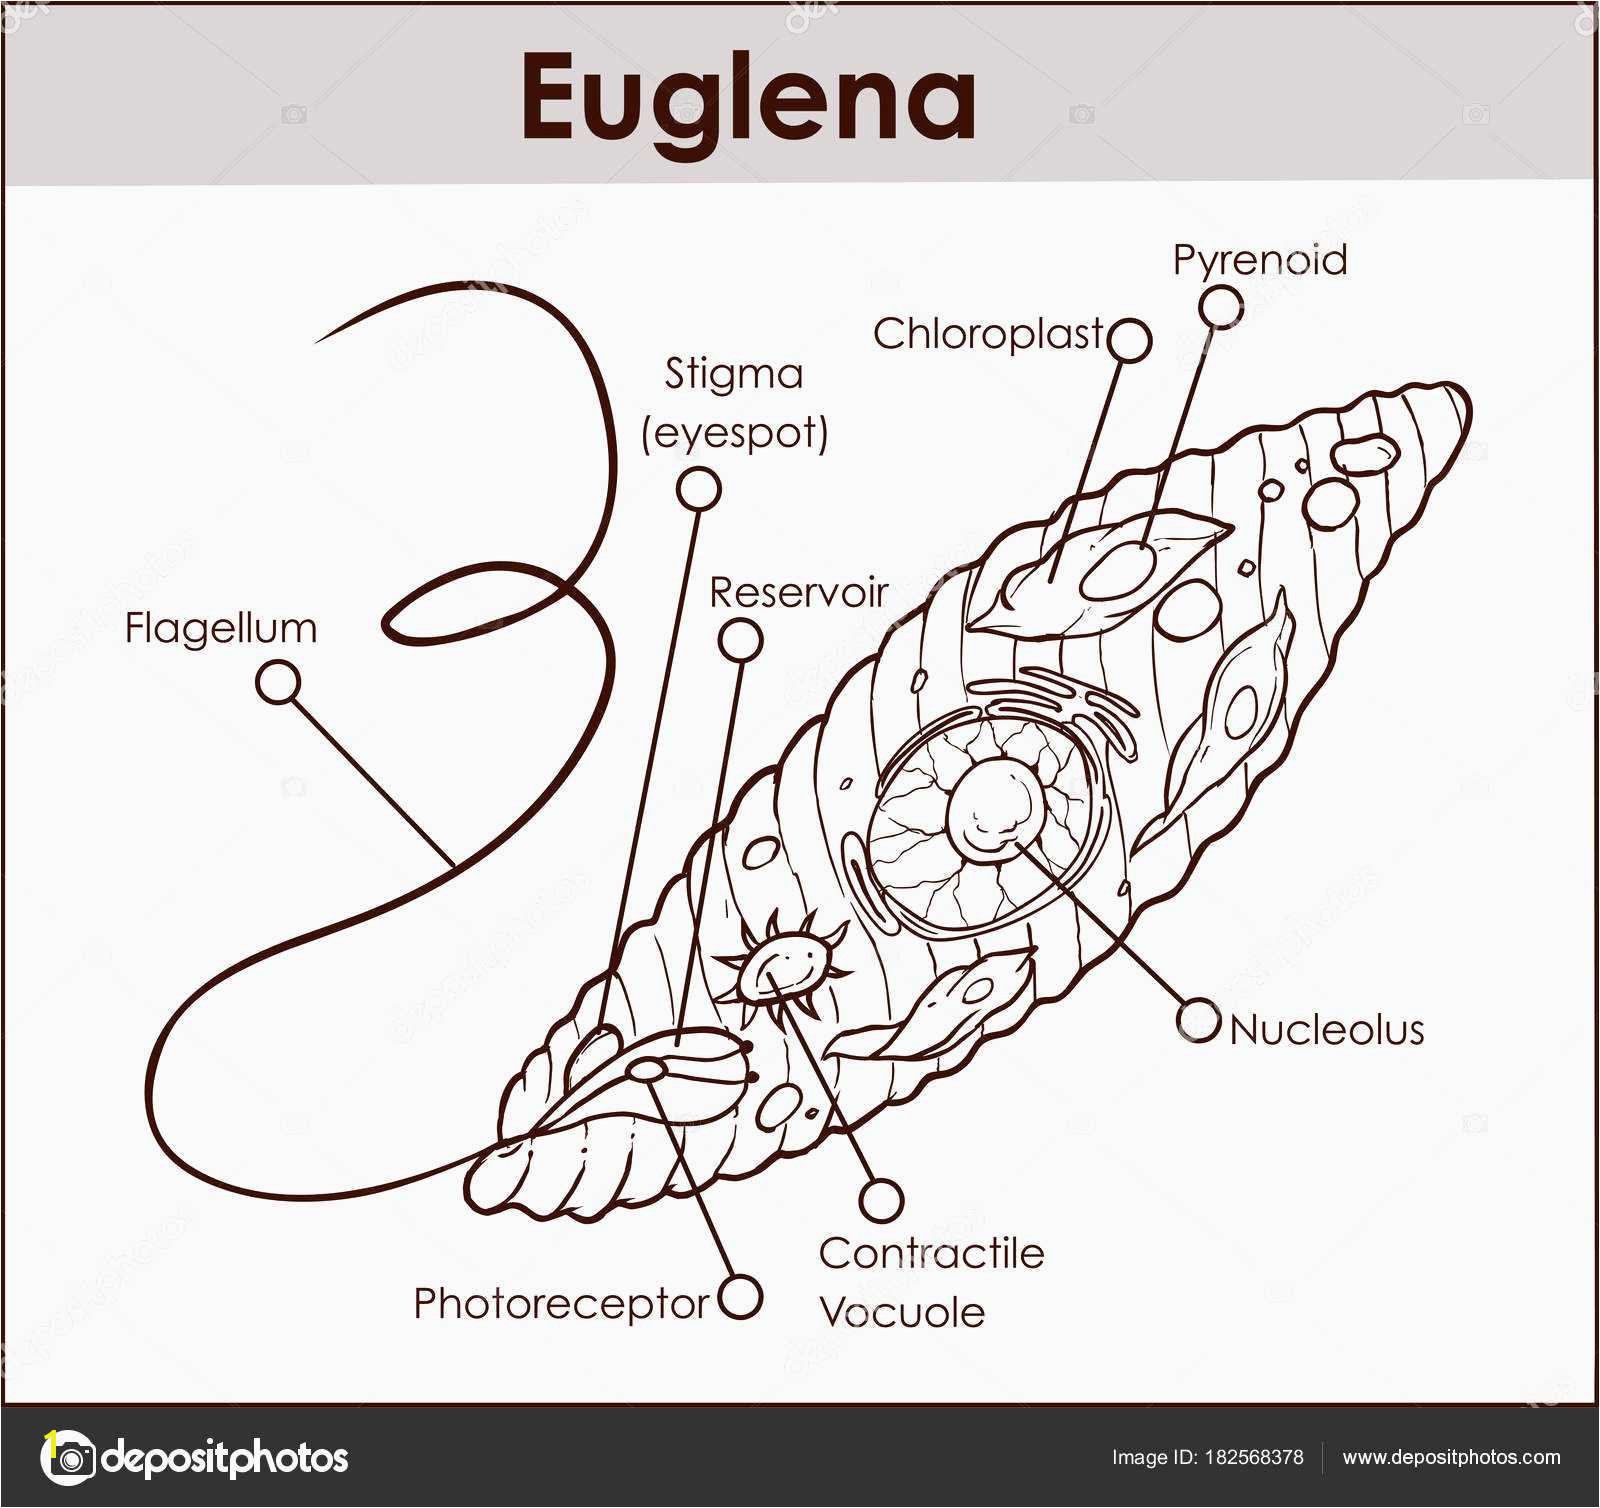 Euglena Coloring Page Biologycorner Plant Cell Coloring Luxury Approved Euglena